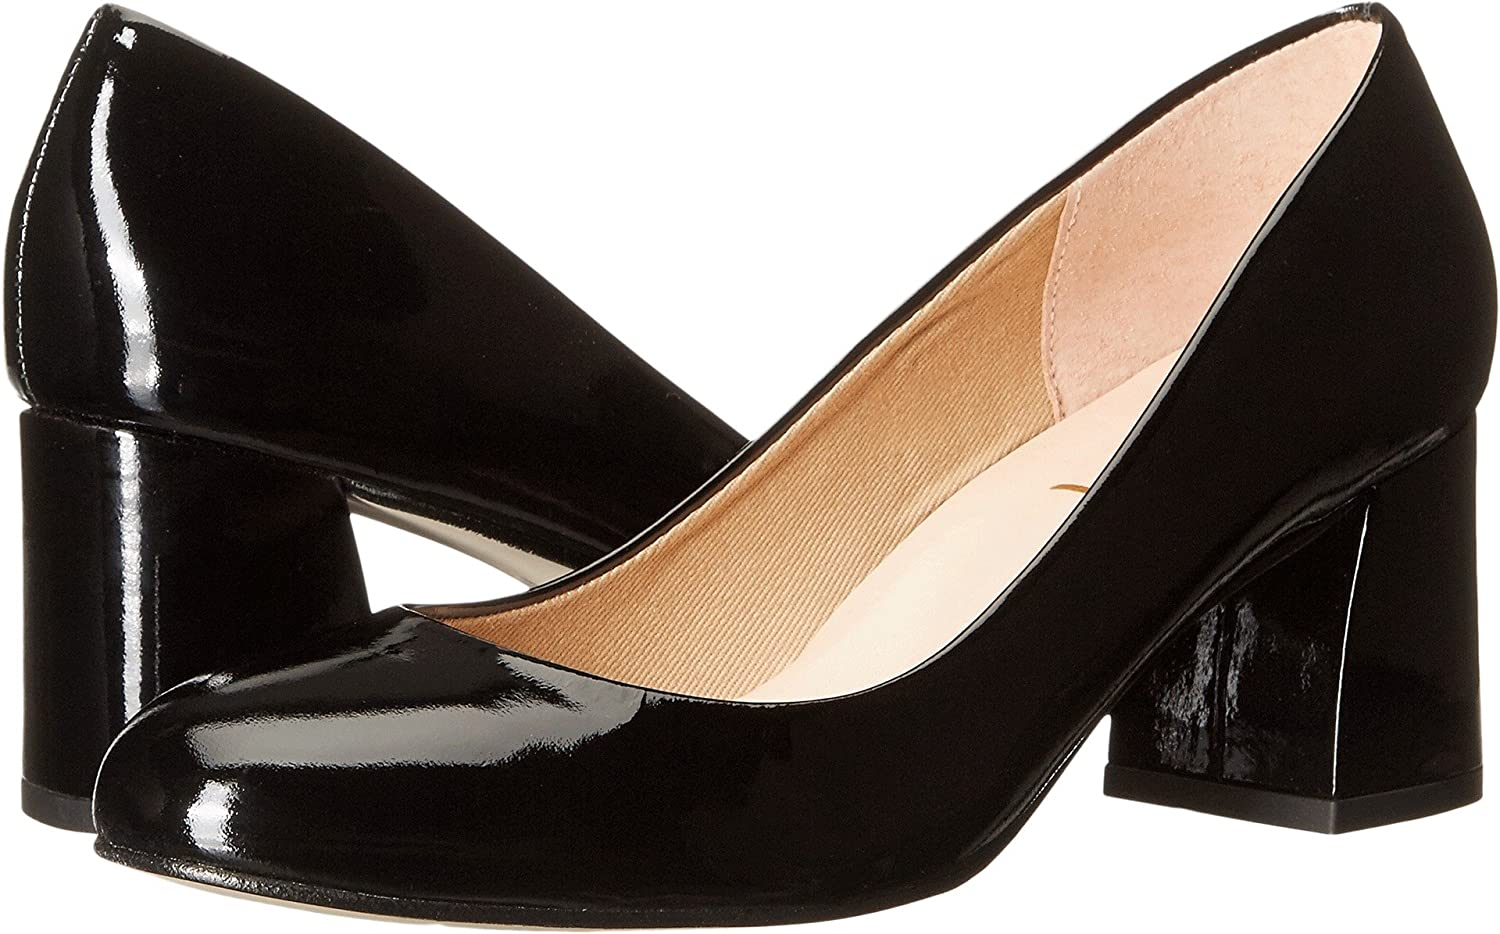 French Sole Womens Trance Suede Round Toe Classic Pumps B01LZ88JRQ 8.5 B(M) US|Black Patent Leather